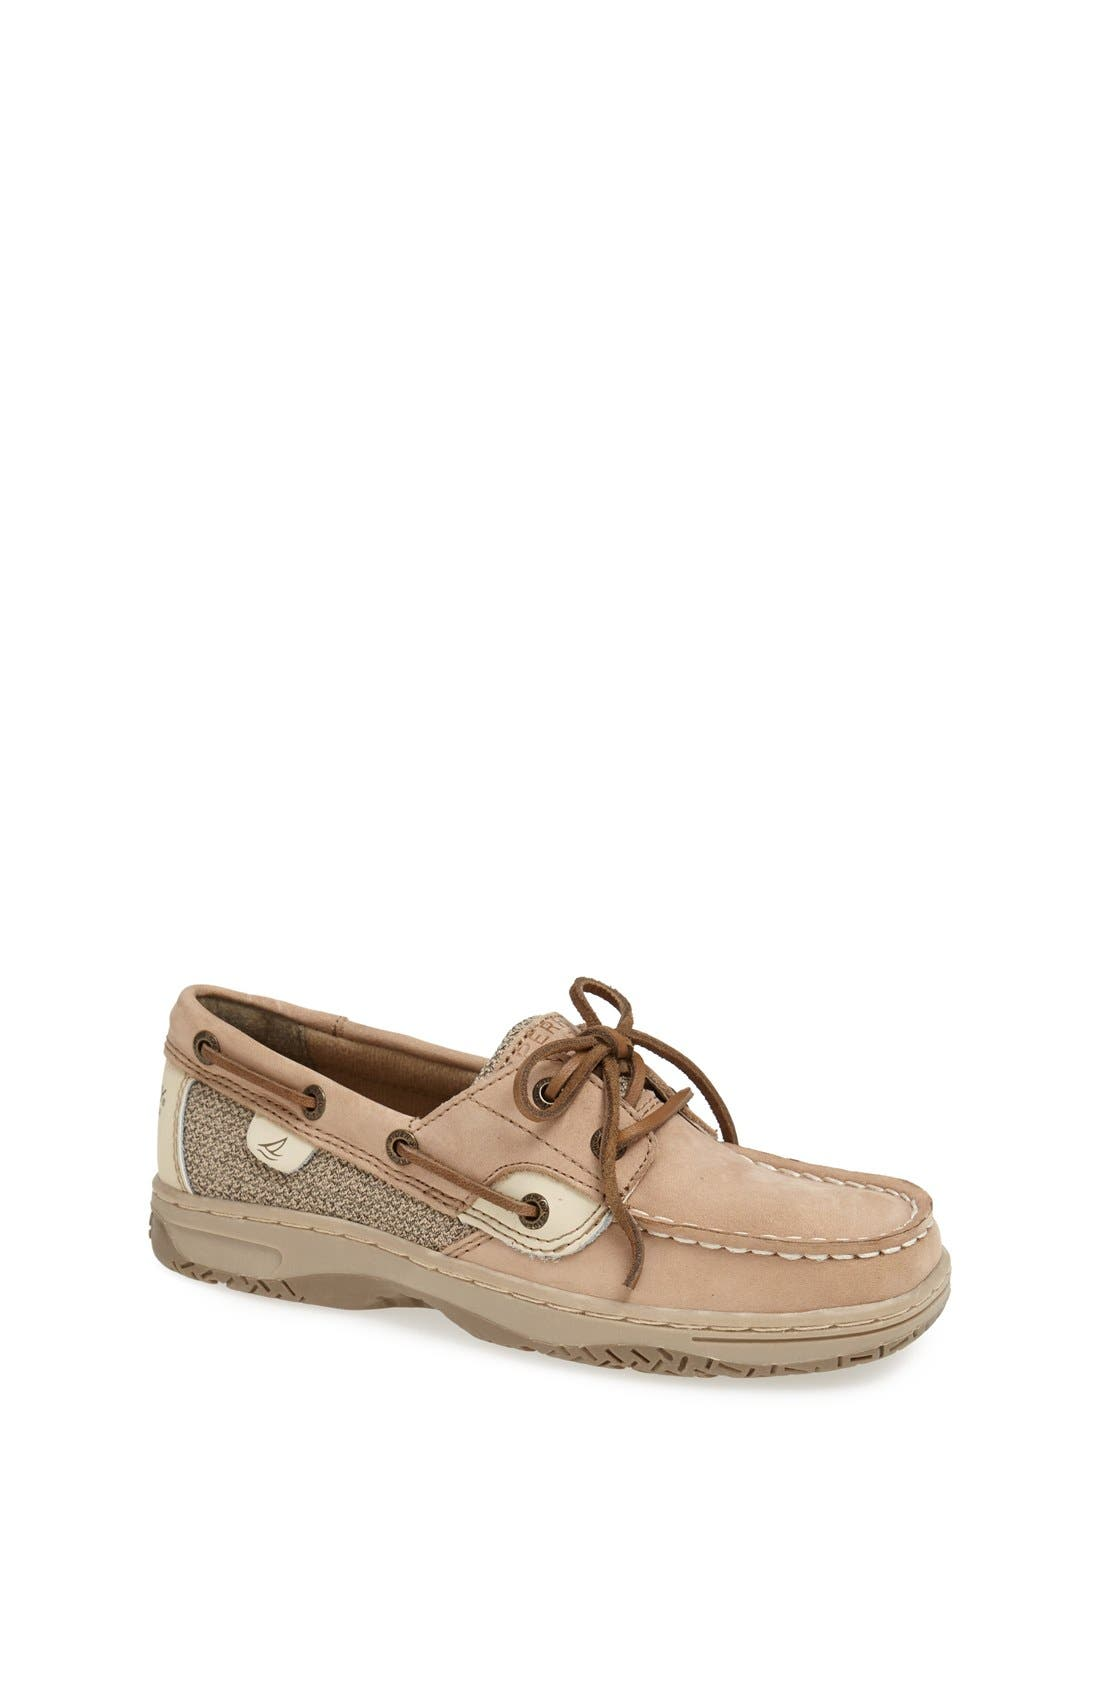 Main Image - Sperry Kids 'Bluefish' Boat Shoe (Walker, Toddler, Little Kid & Big Kid)